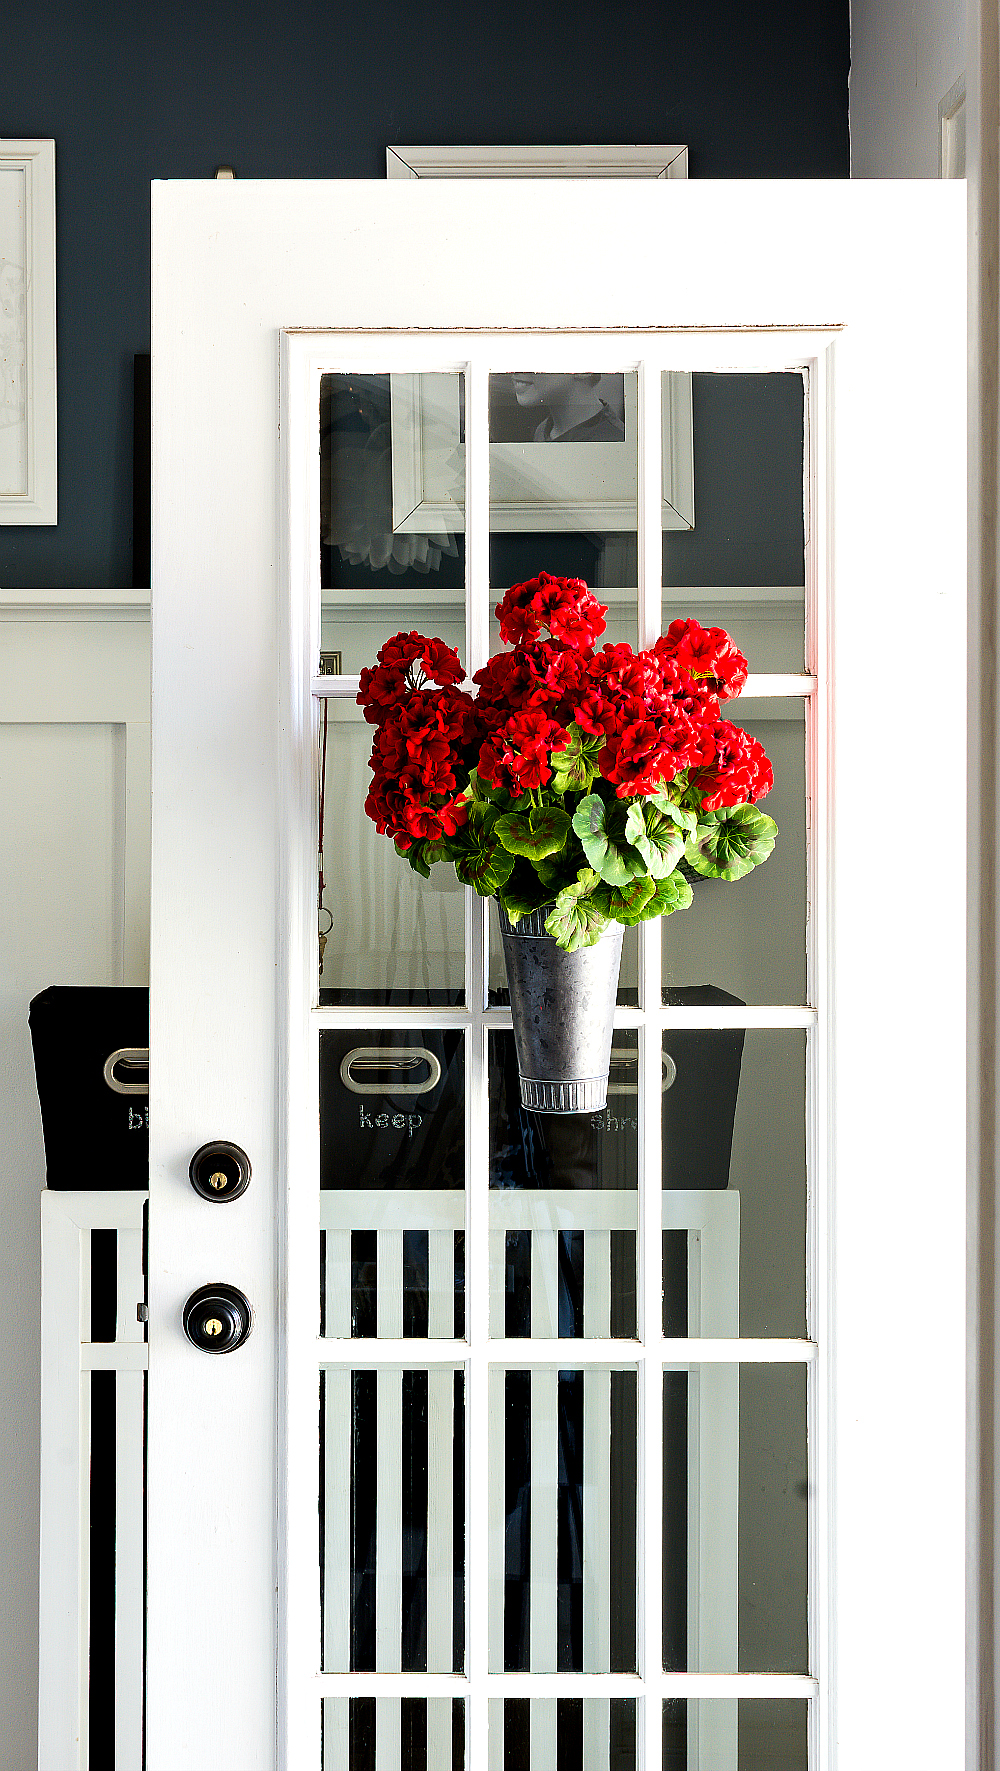 Summer Wreath Ideas - Geraniums in Vase on Door